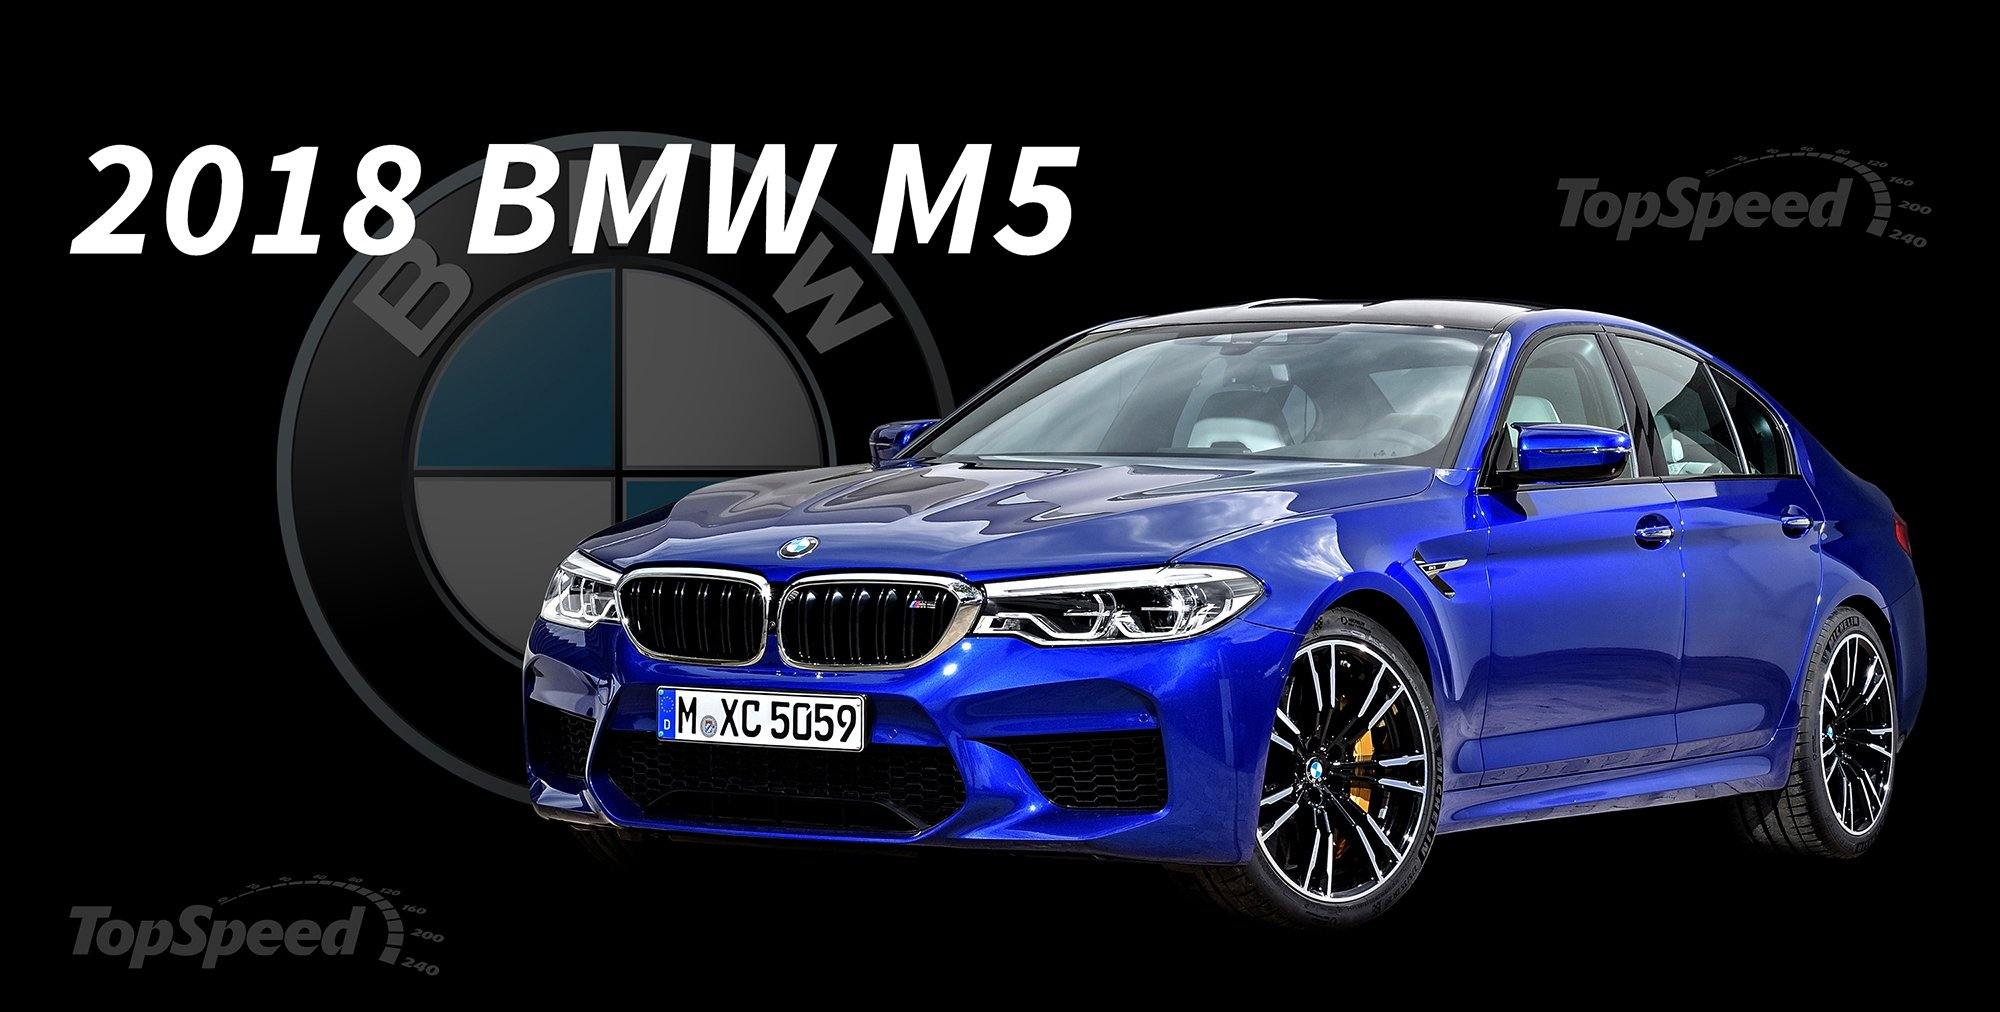 BMW M5: Old vs New